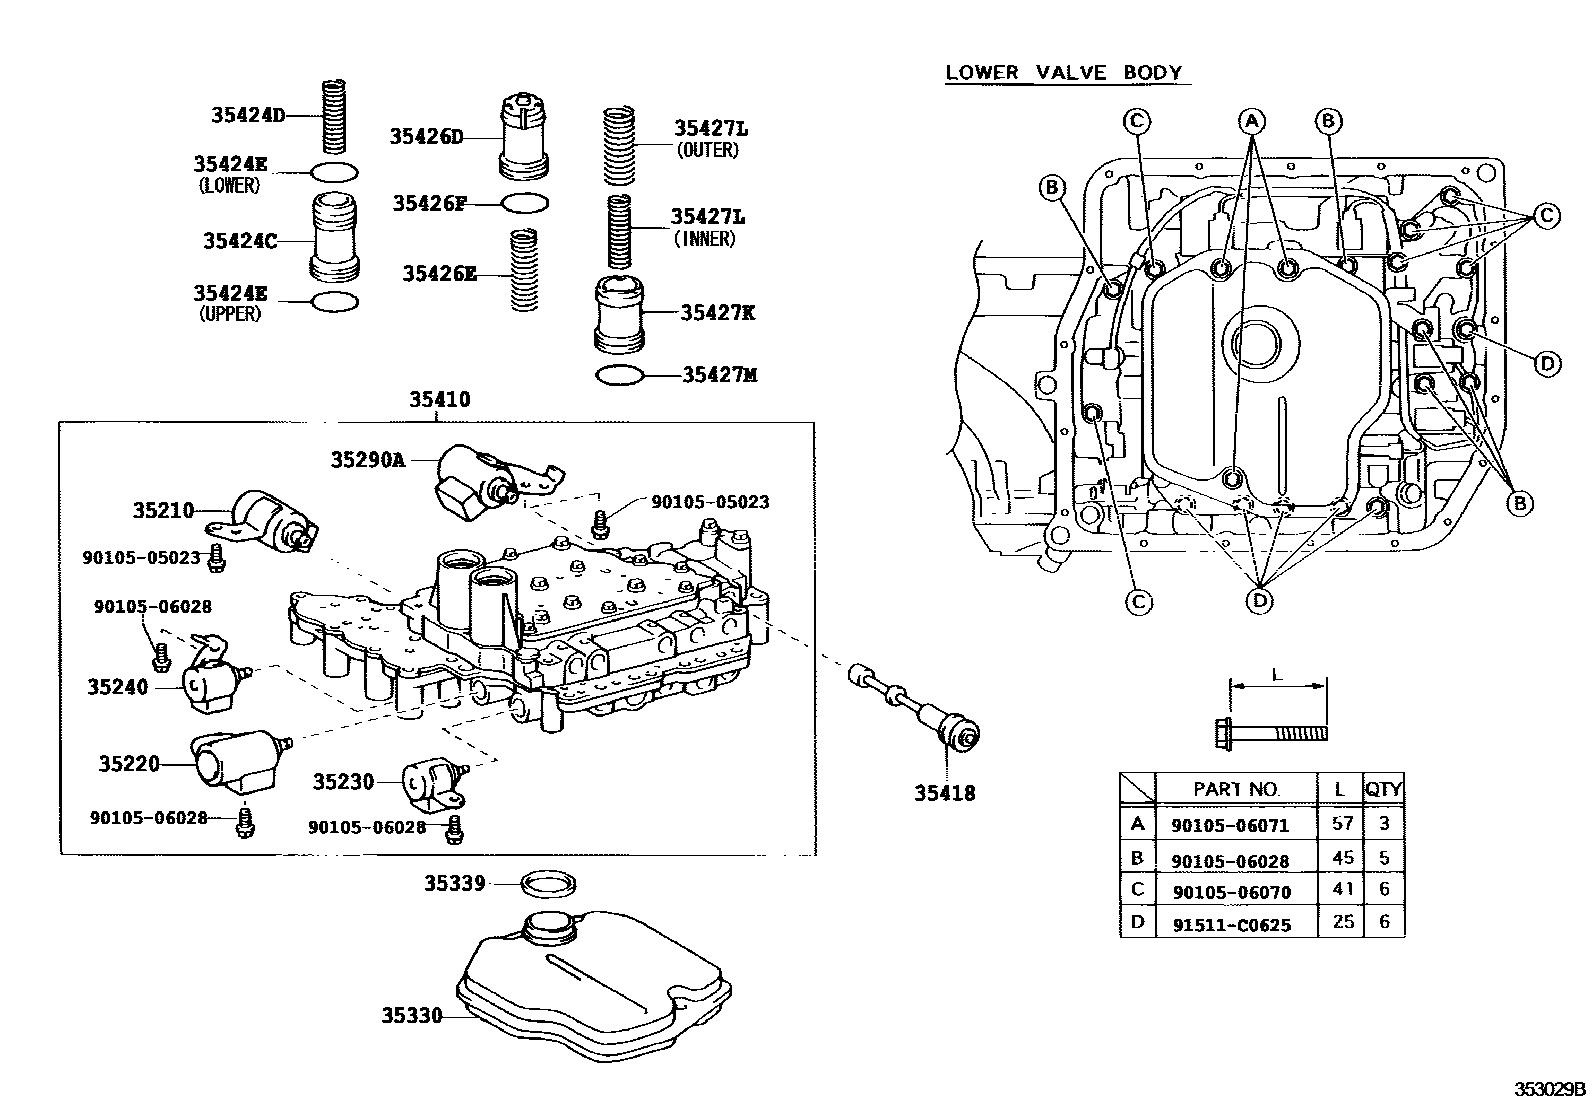 hight resolution of lexus es300 diagram wiring diagram origin lexus es300 engine diagram hoses 2002 lexus es300 parts diagram